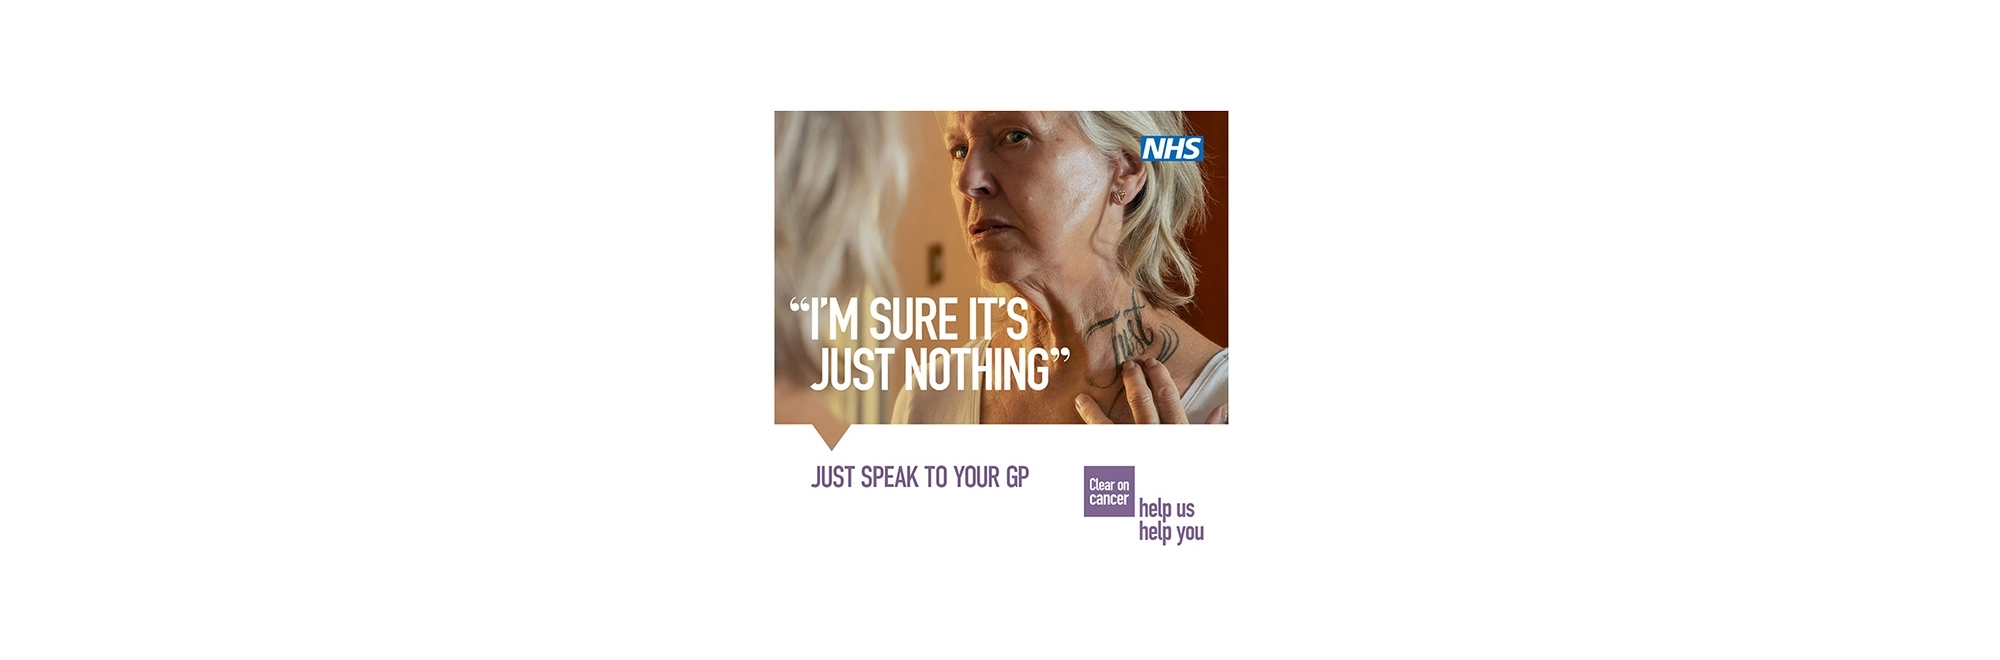 NHS England launches the 'Help Us, Help You' campaign identifying the little 'excuses' people use when they are reluctant to seek medical attention